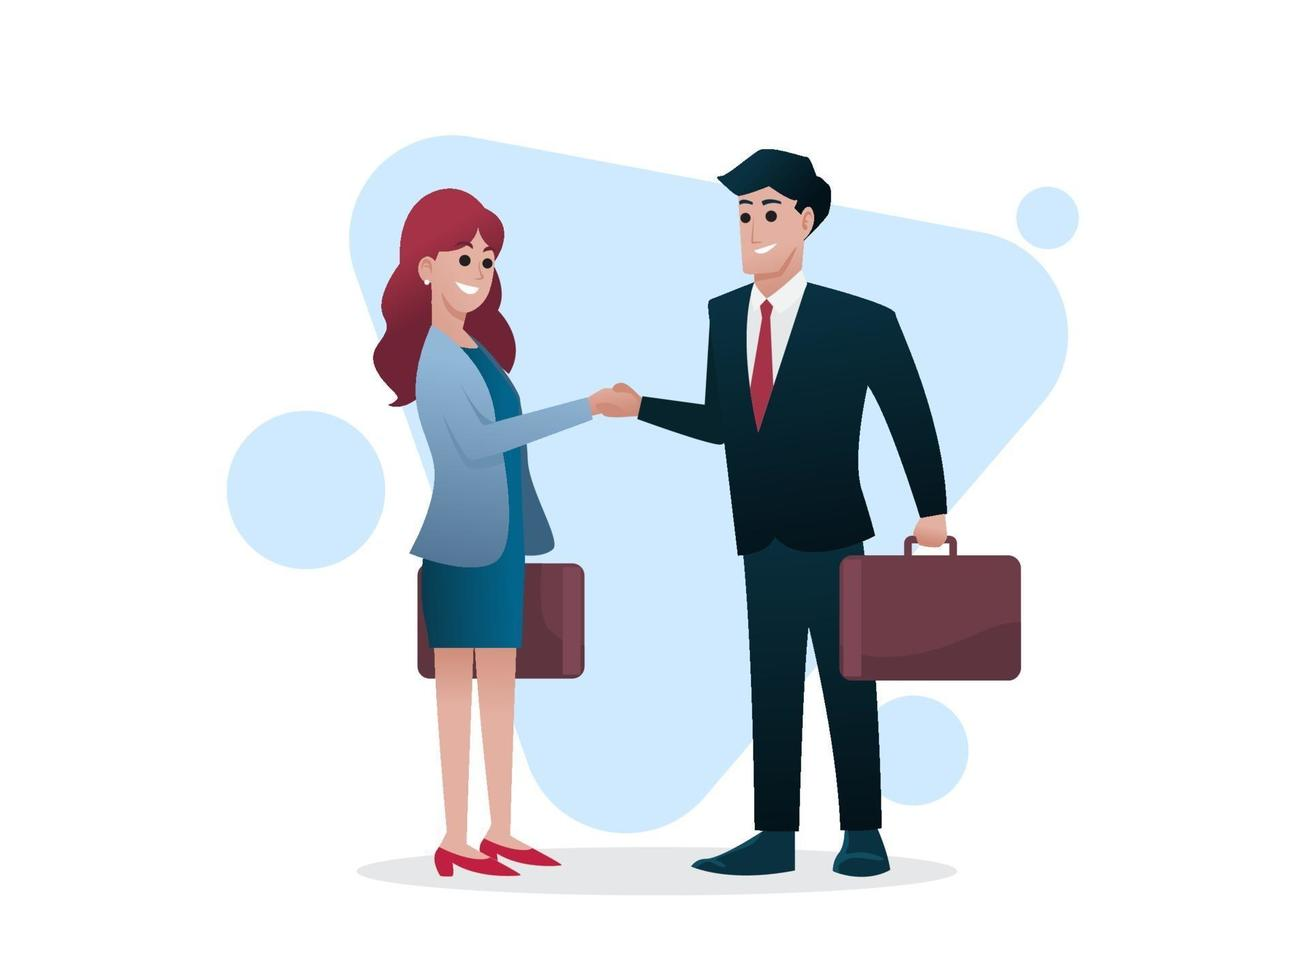 Man and woman with briefcase shake hands, business deal or investor concept, vector illustration